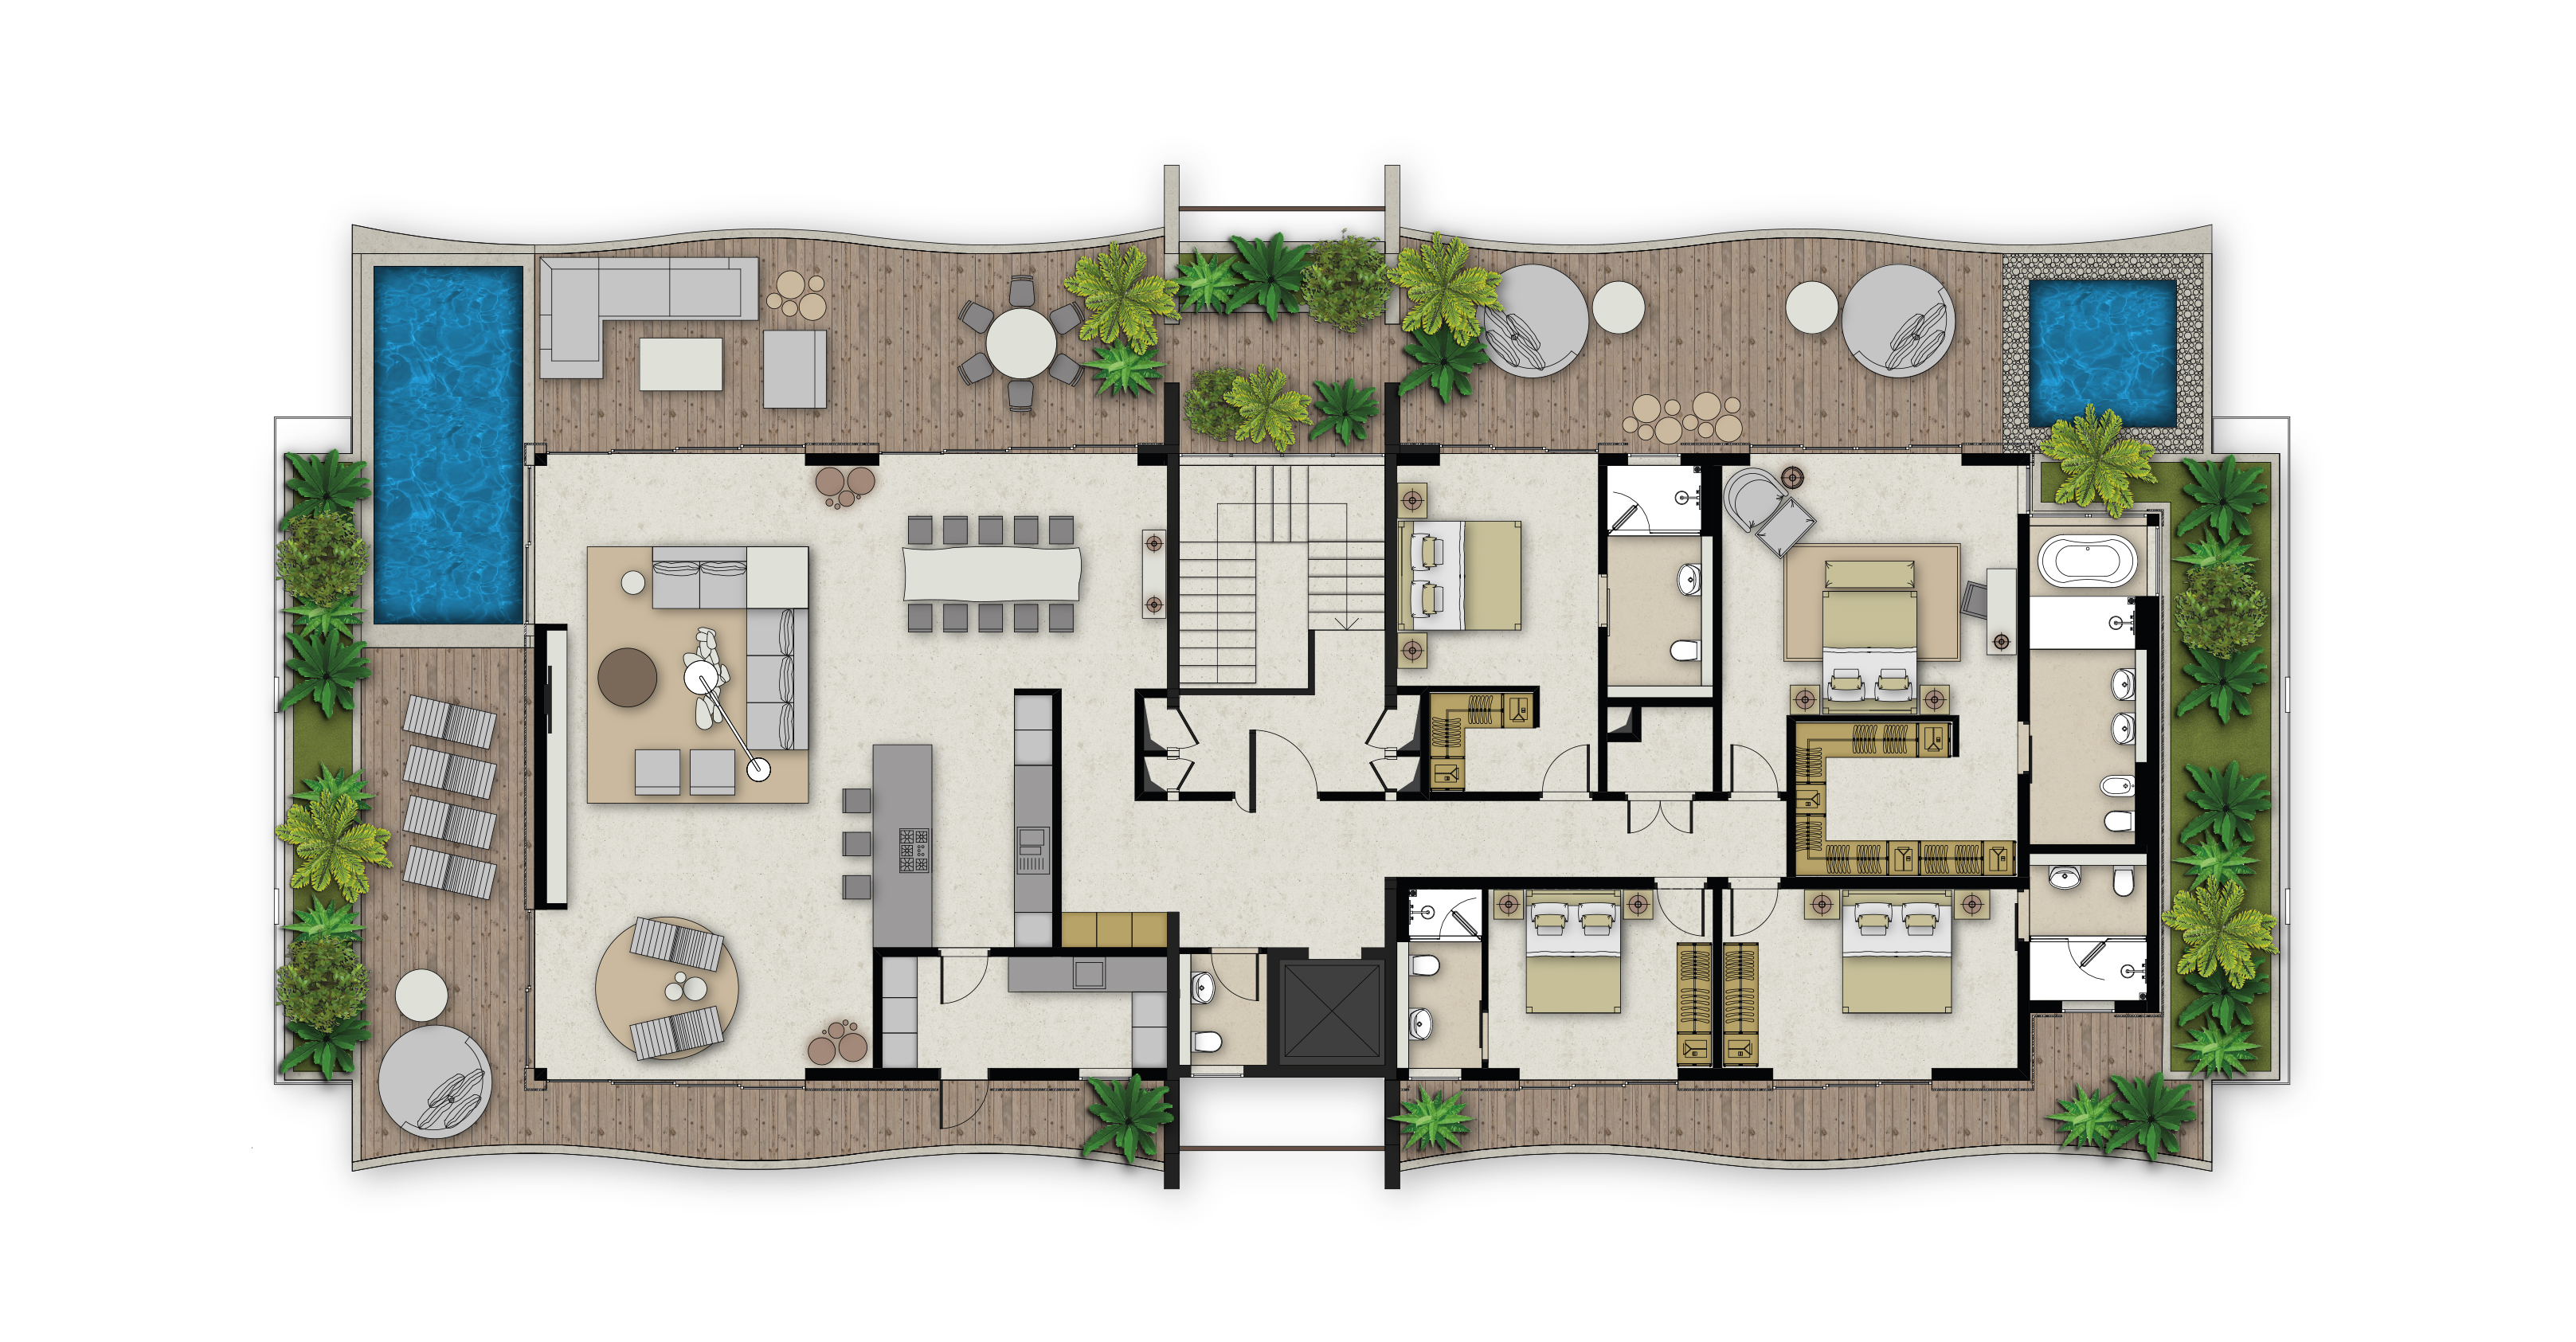 MANTA COVE Plan penthouse copy